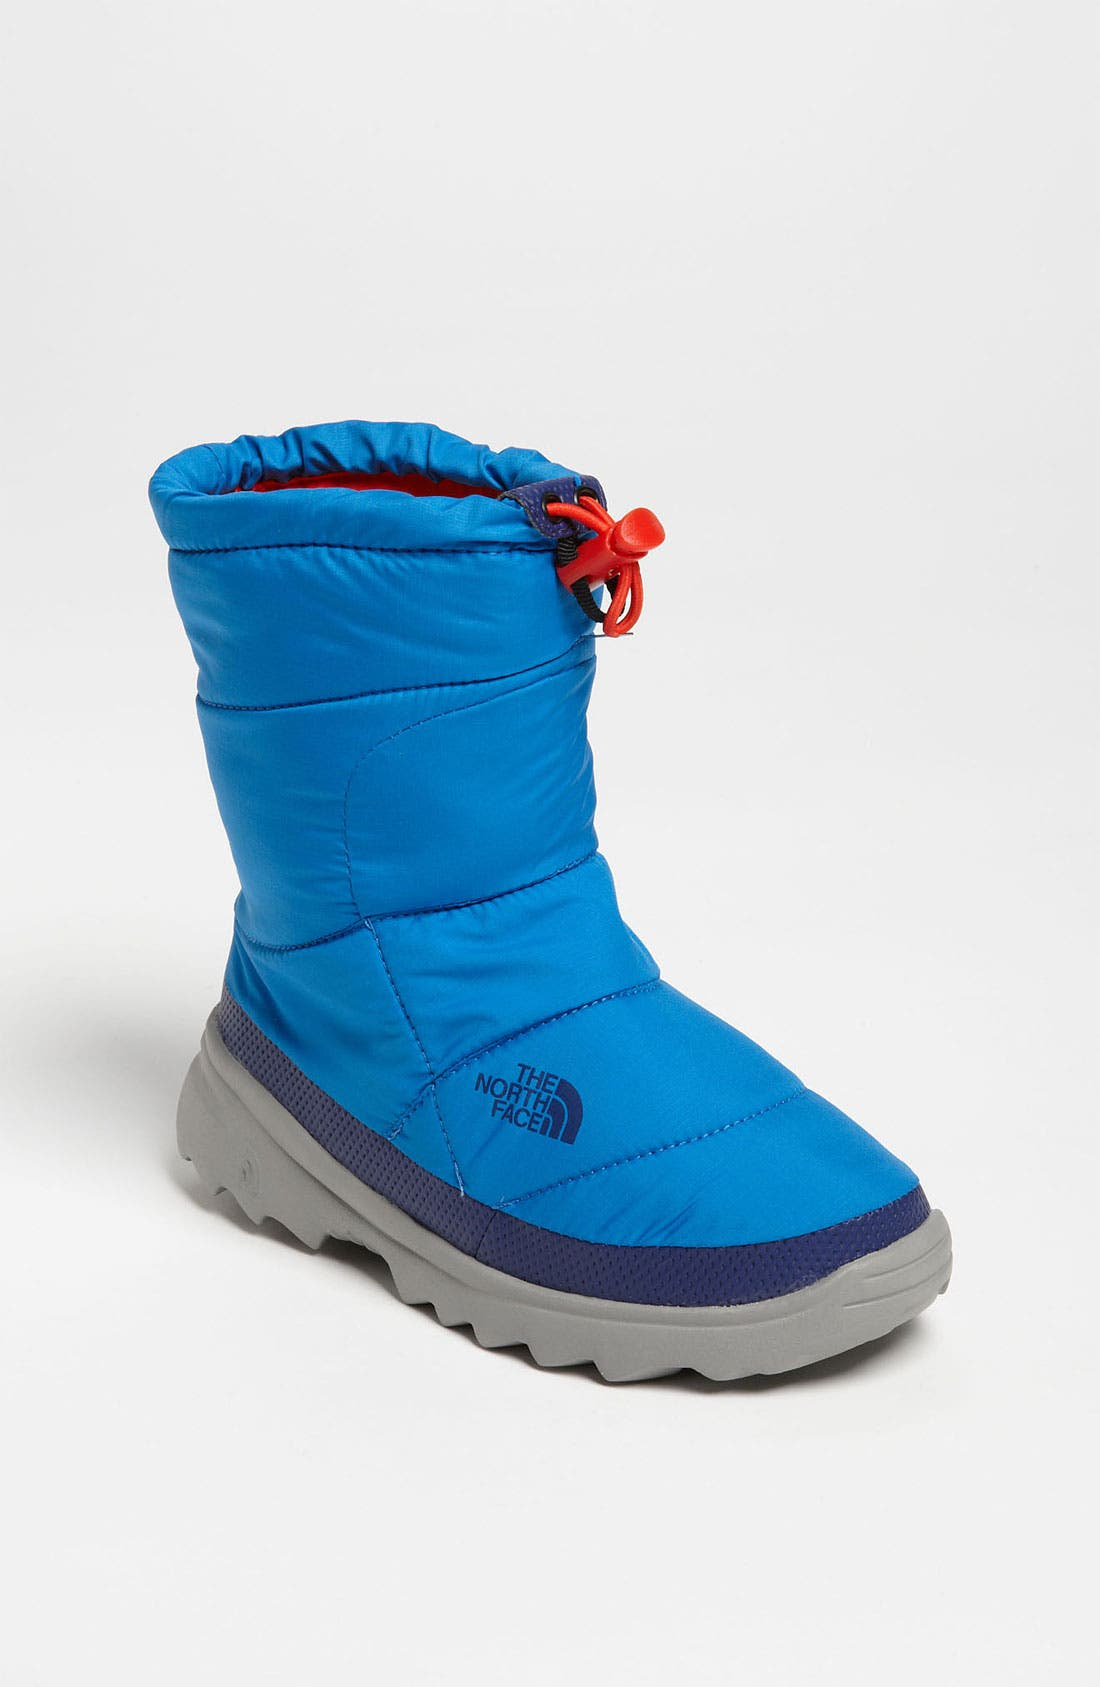 Alternate Image 1 Selected - The North Face 'Nuptse' Boot (Little Kid & Big Kid)